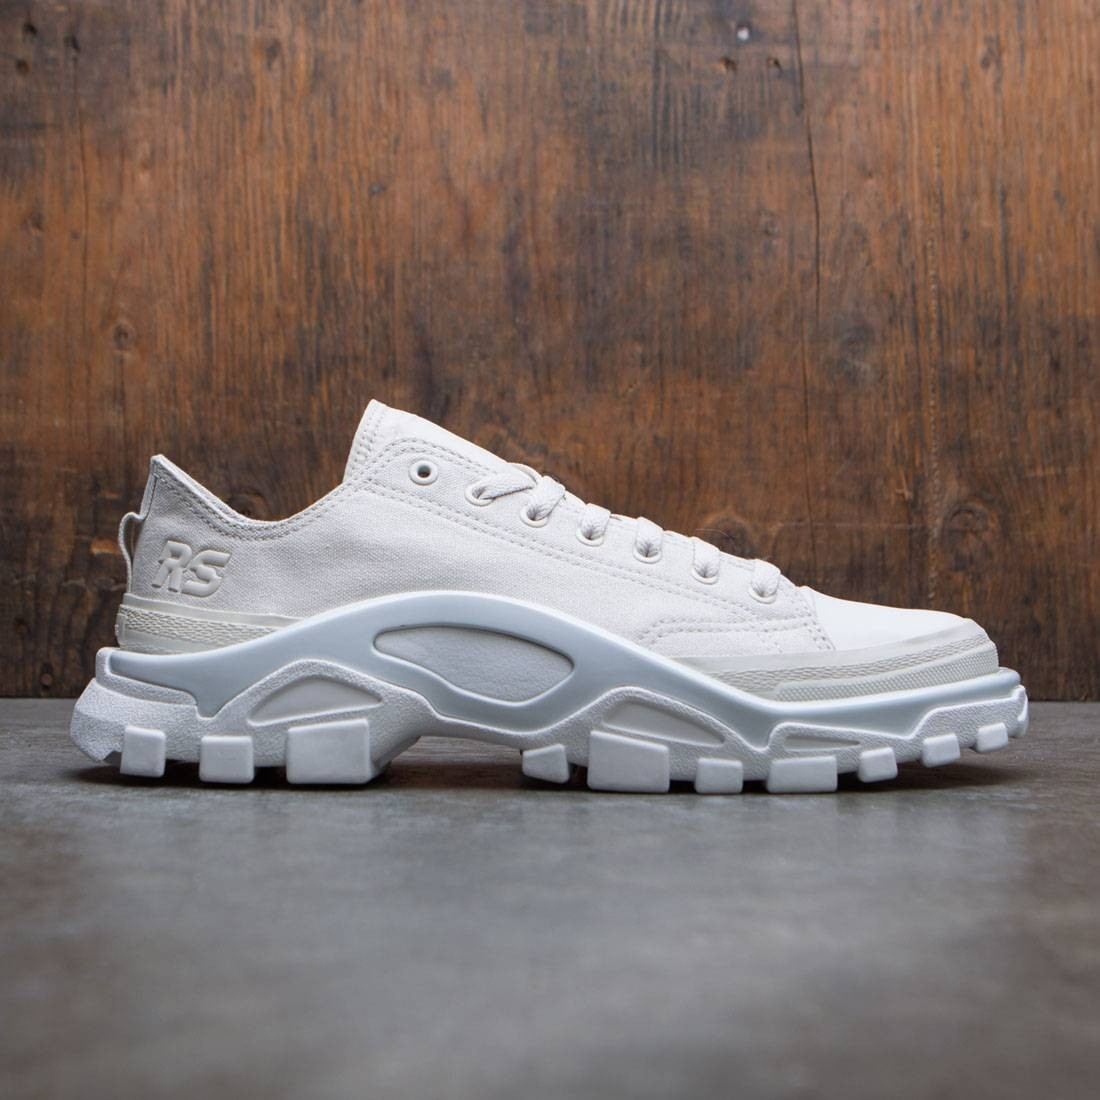 Adidas x Raf Simons Men New Runner (white / talcs / optic white)